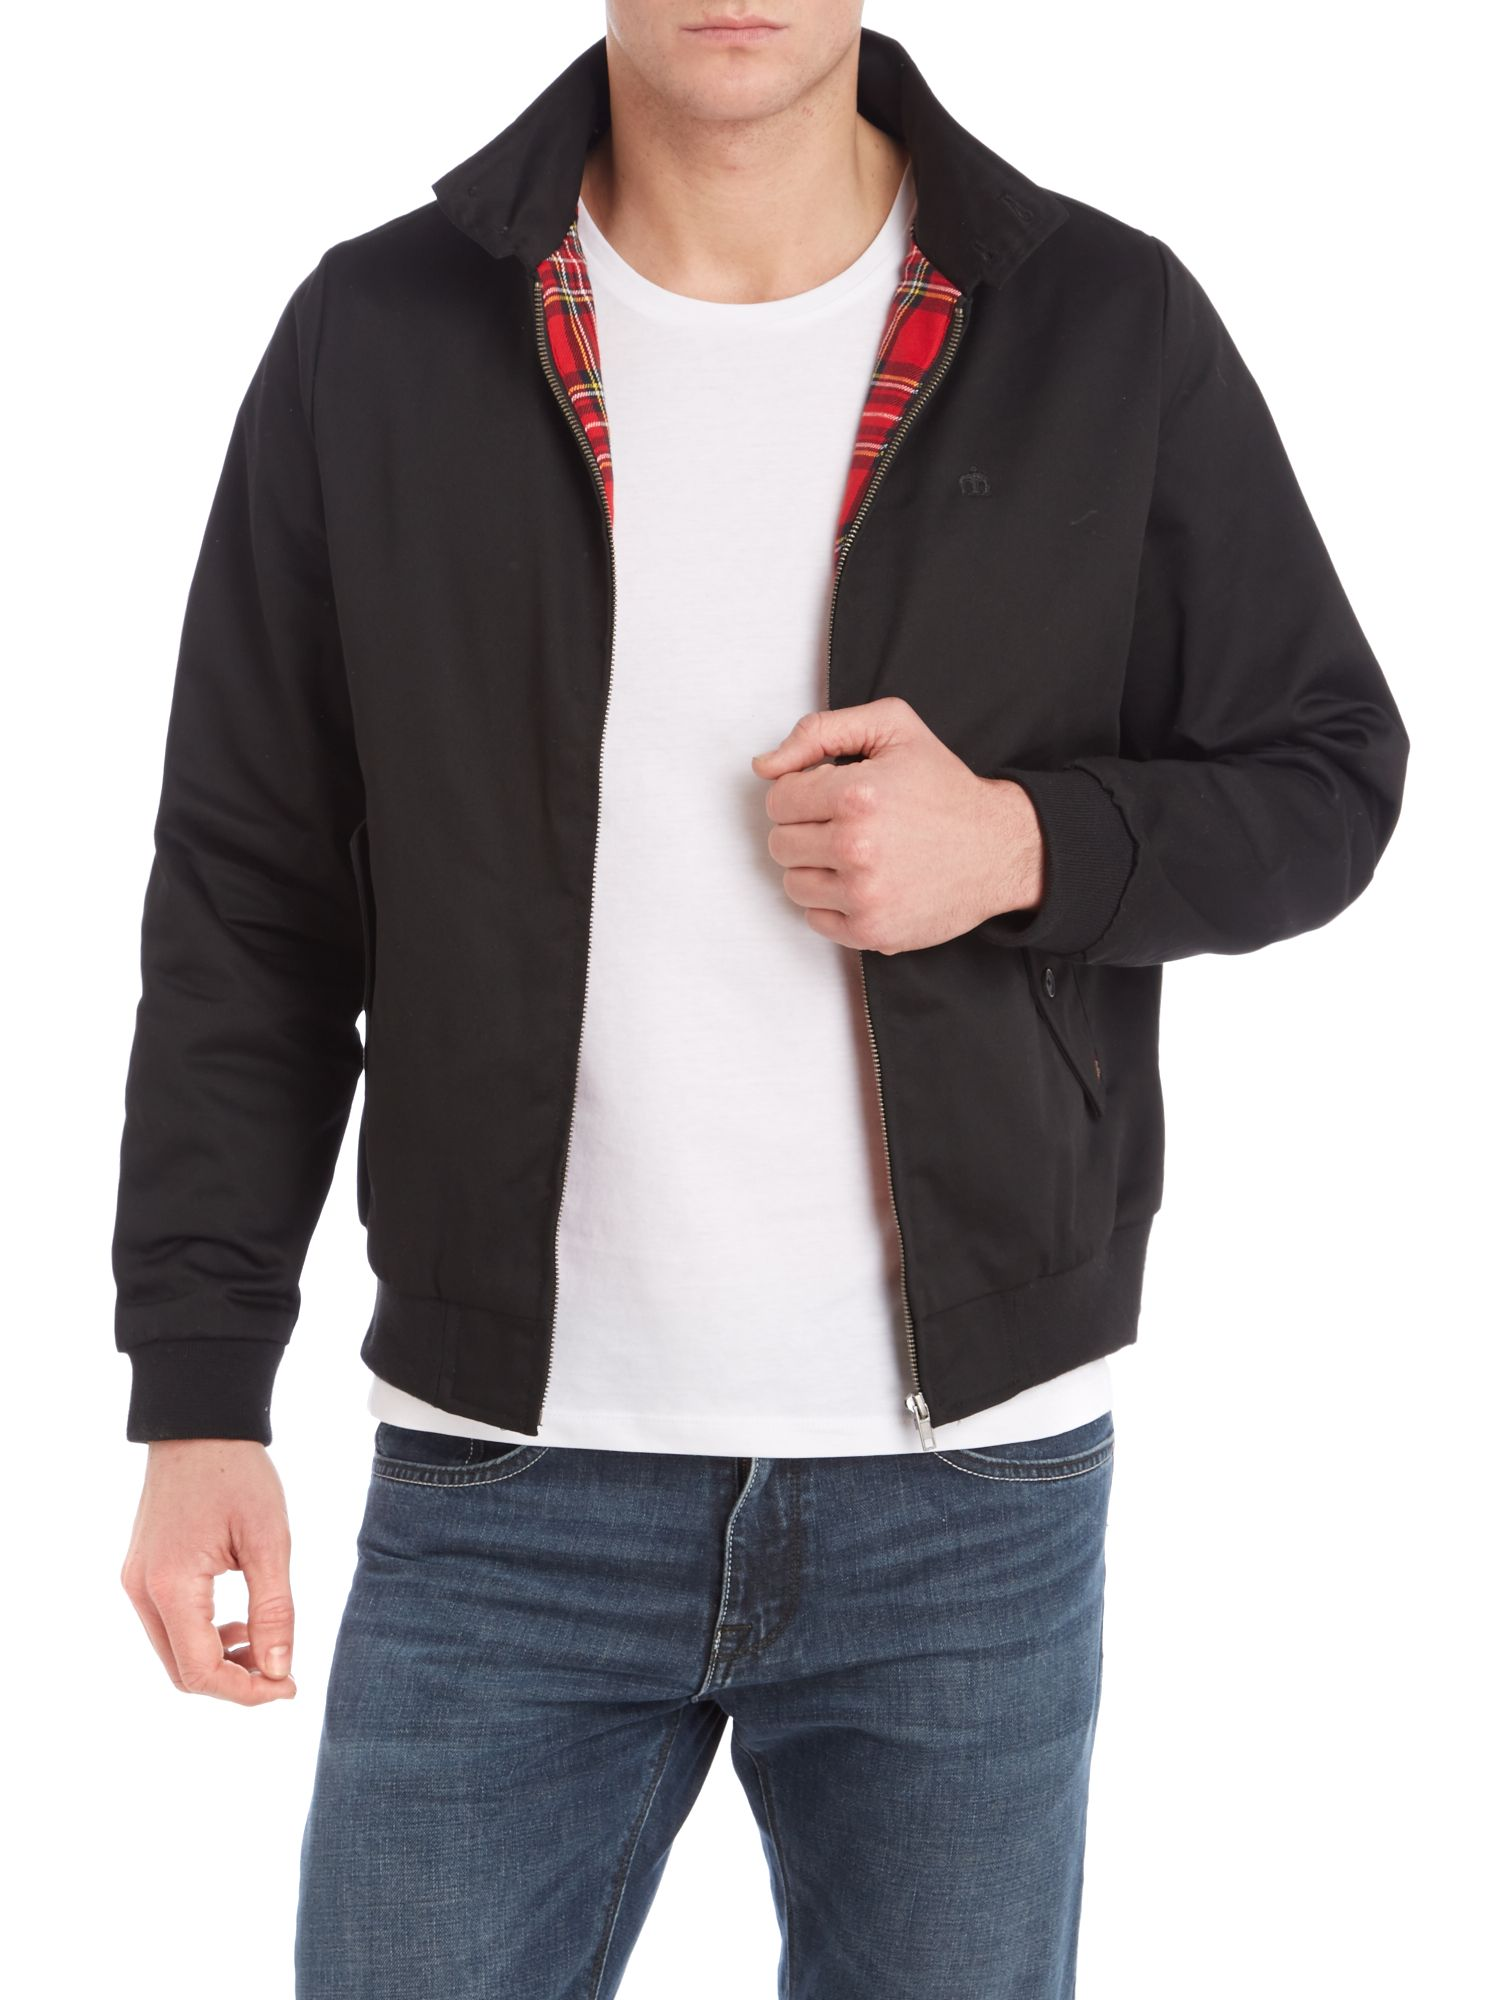 Plaid lined harrington jacket